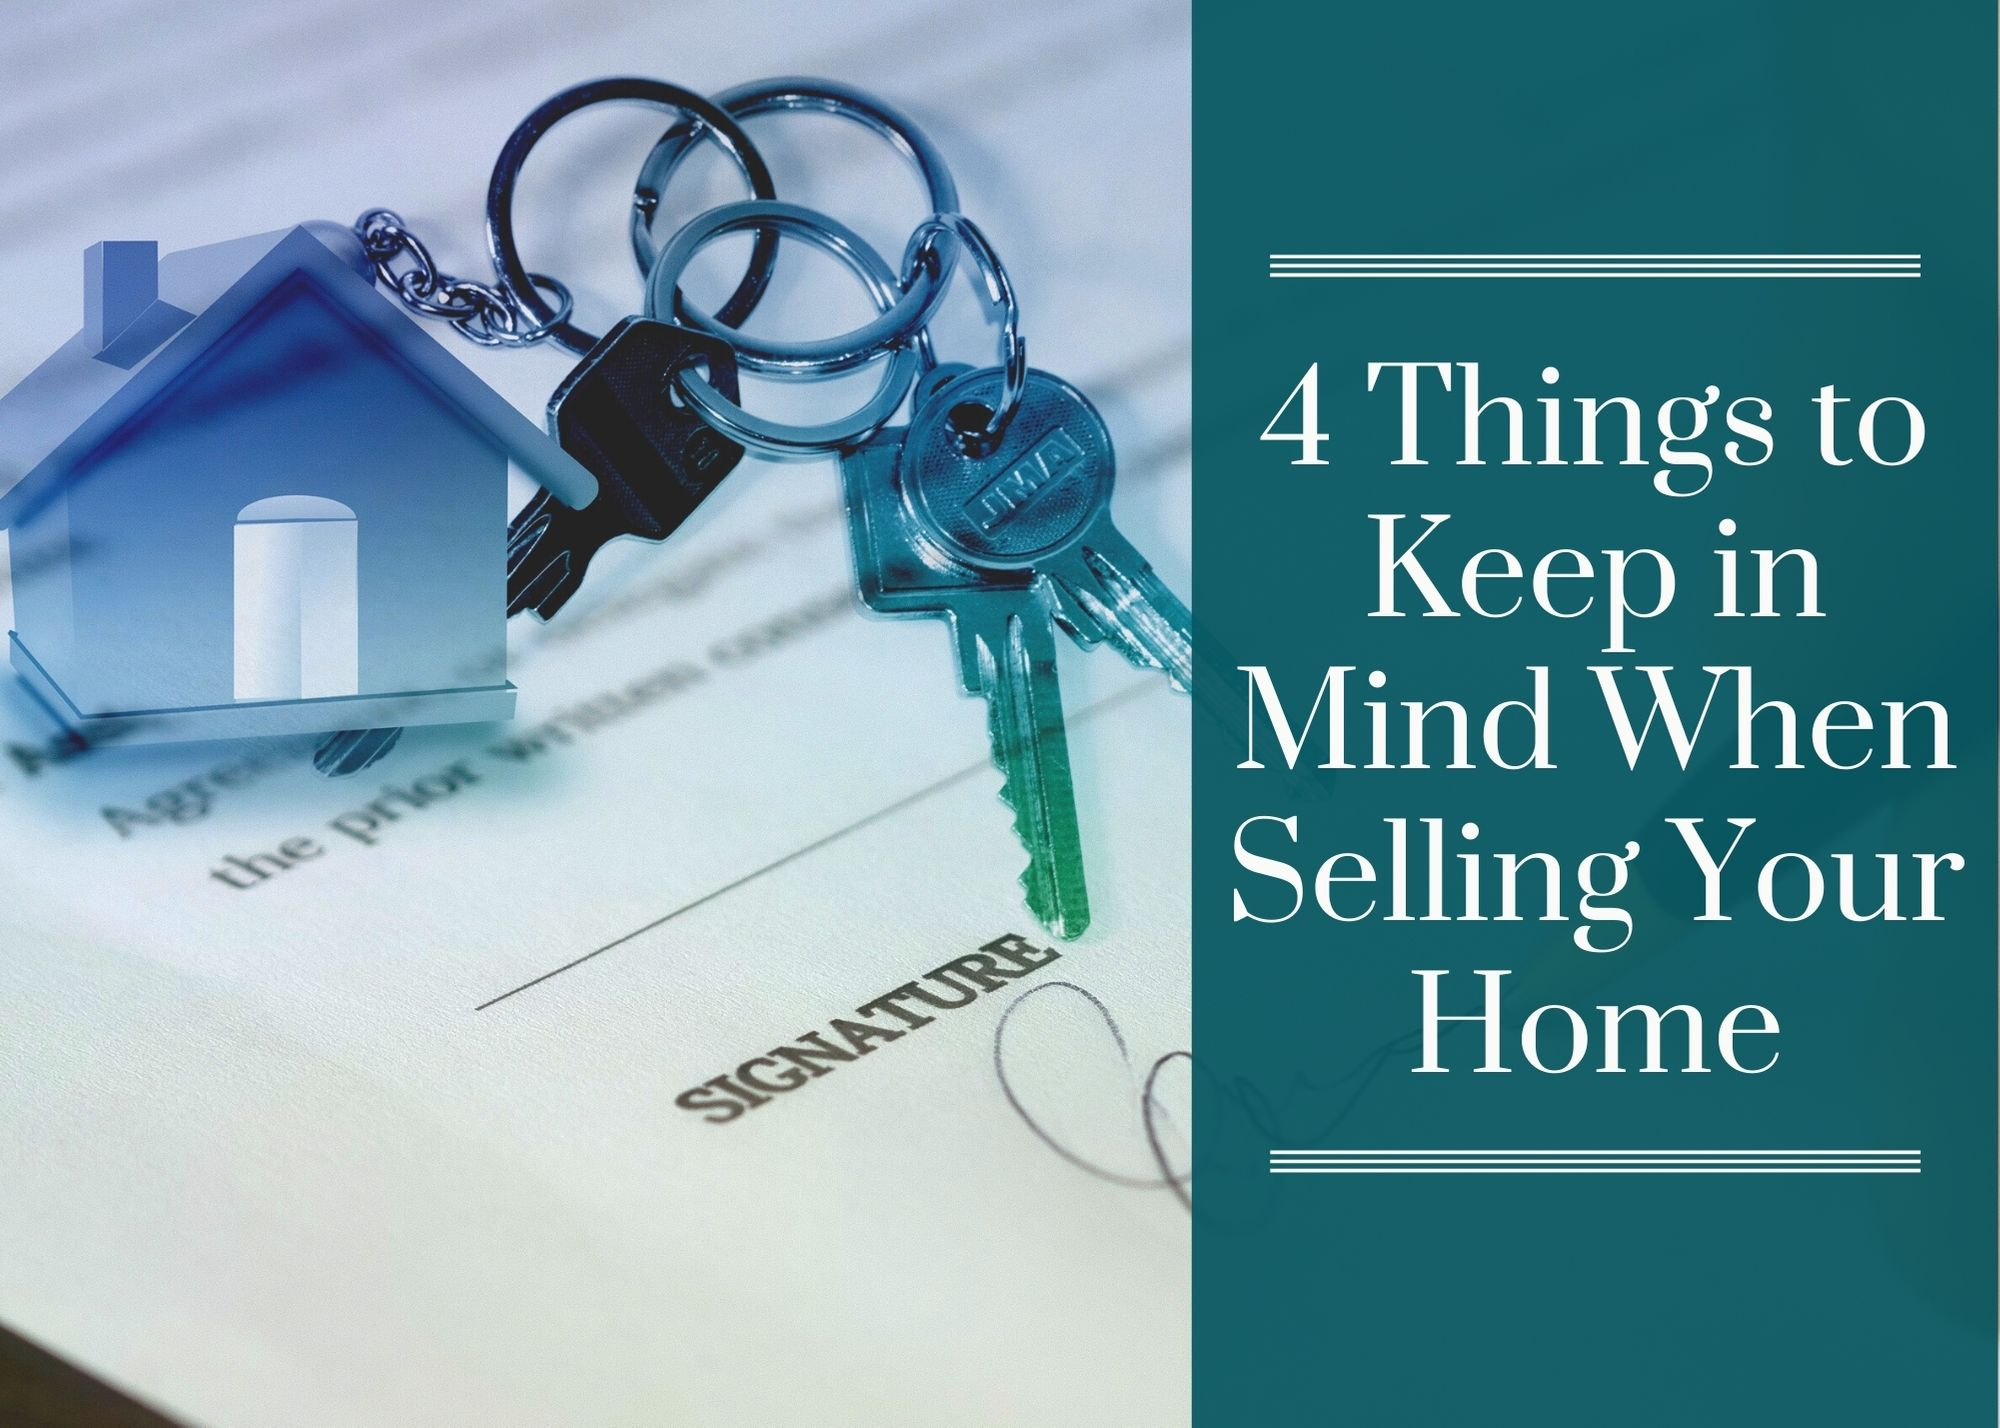 4 Things to Keep in Mind When Selling Your Home